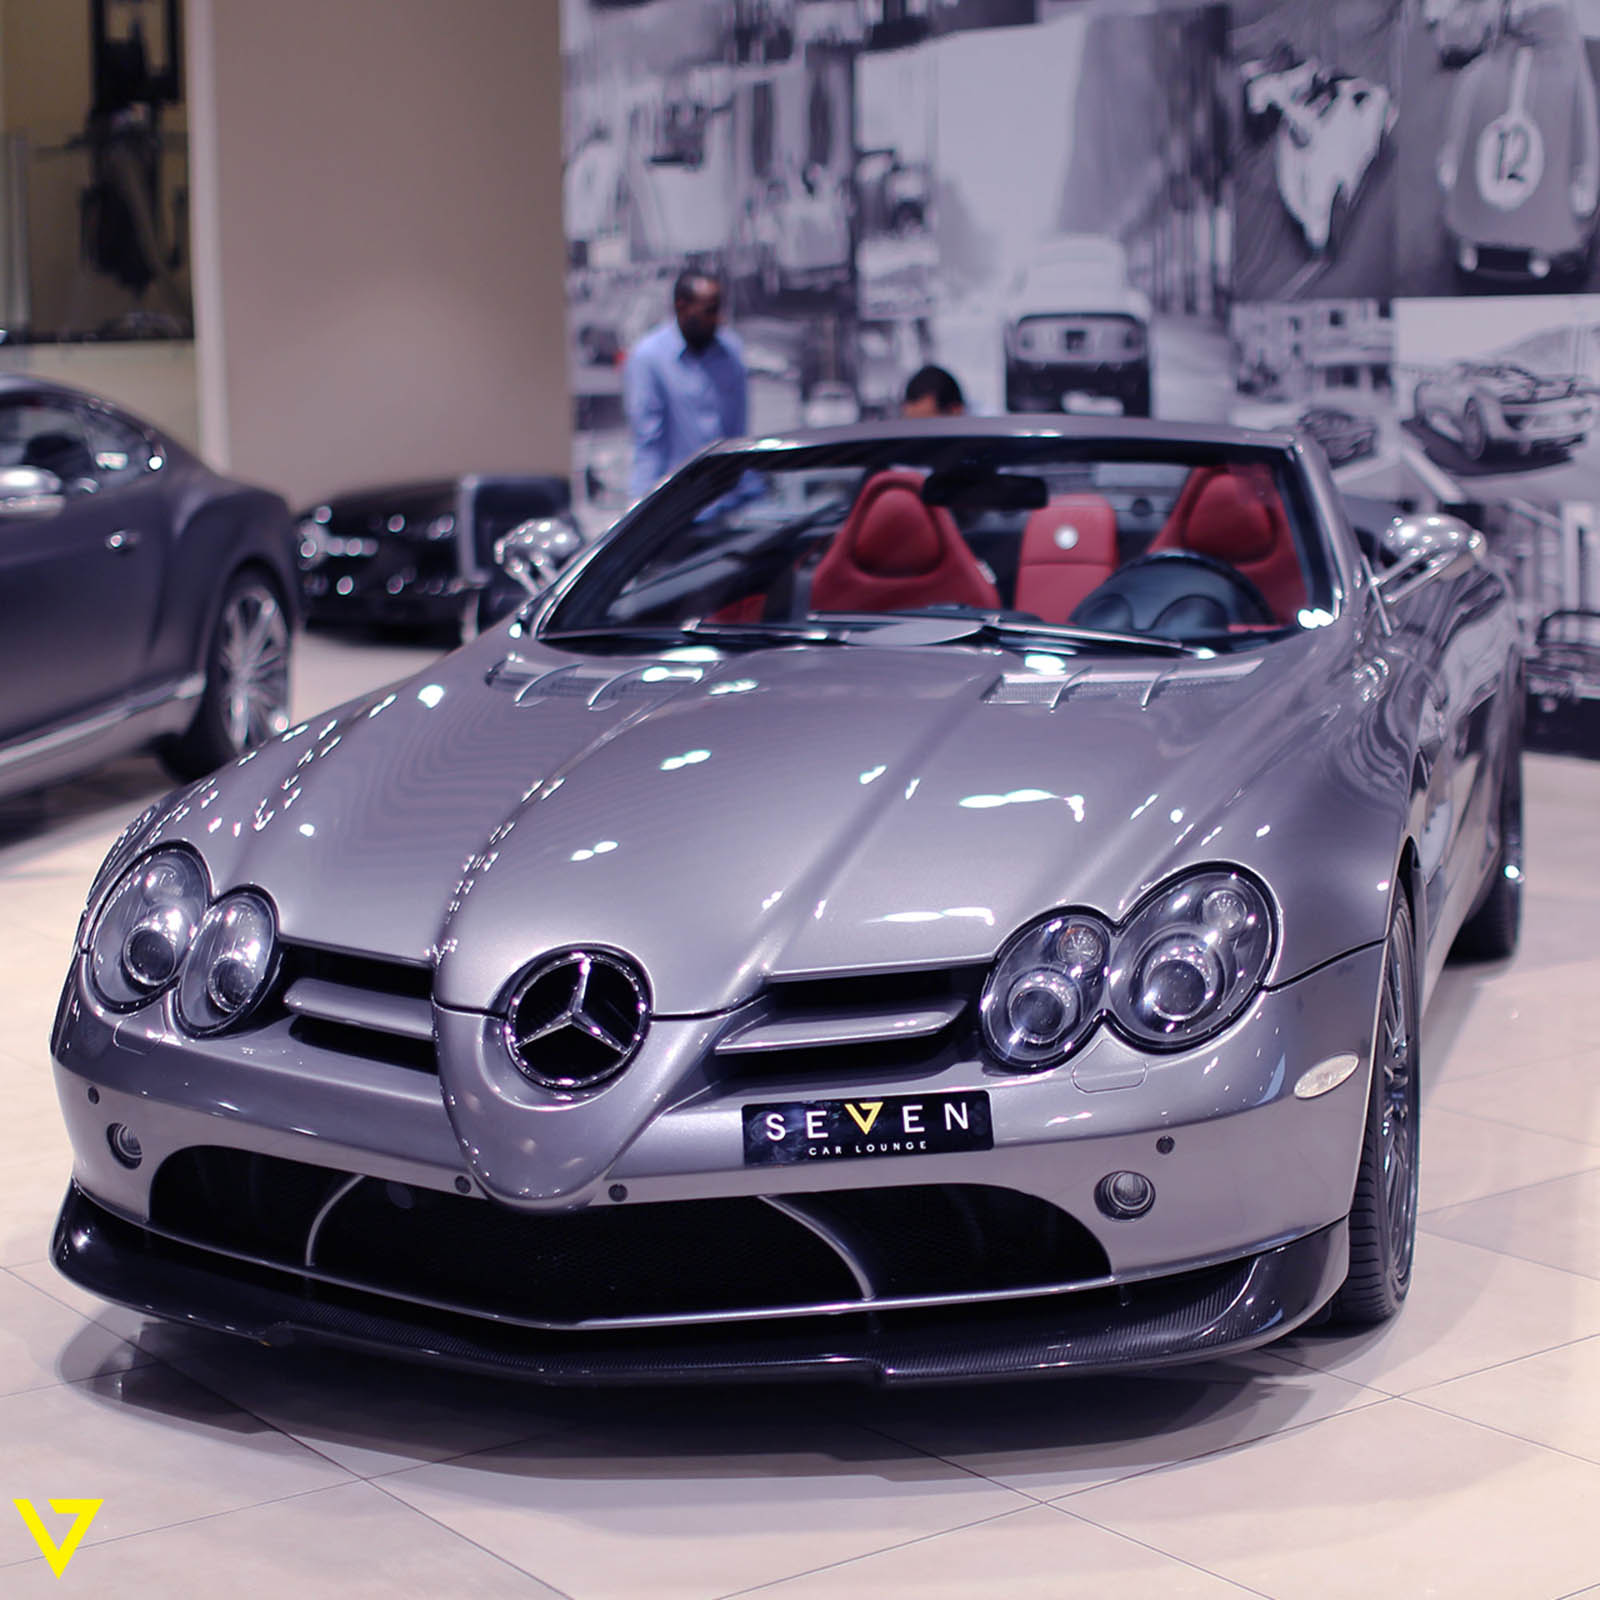 Rare mercedes benz slr mclaren roadster 722 s could be for Mercedes benz slr mclaren price